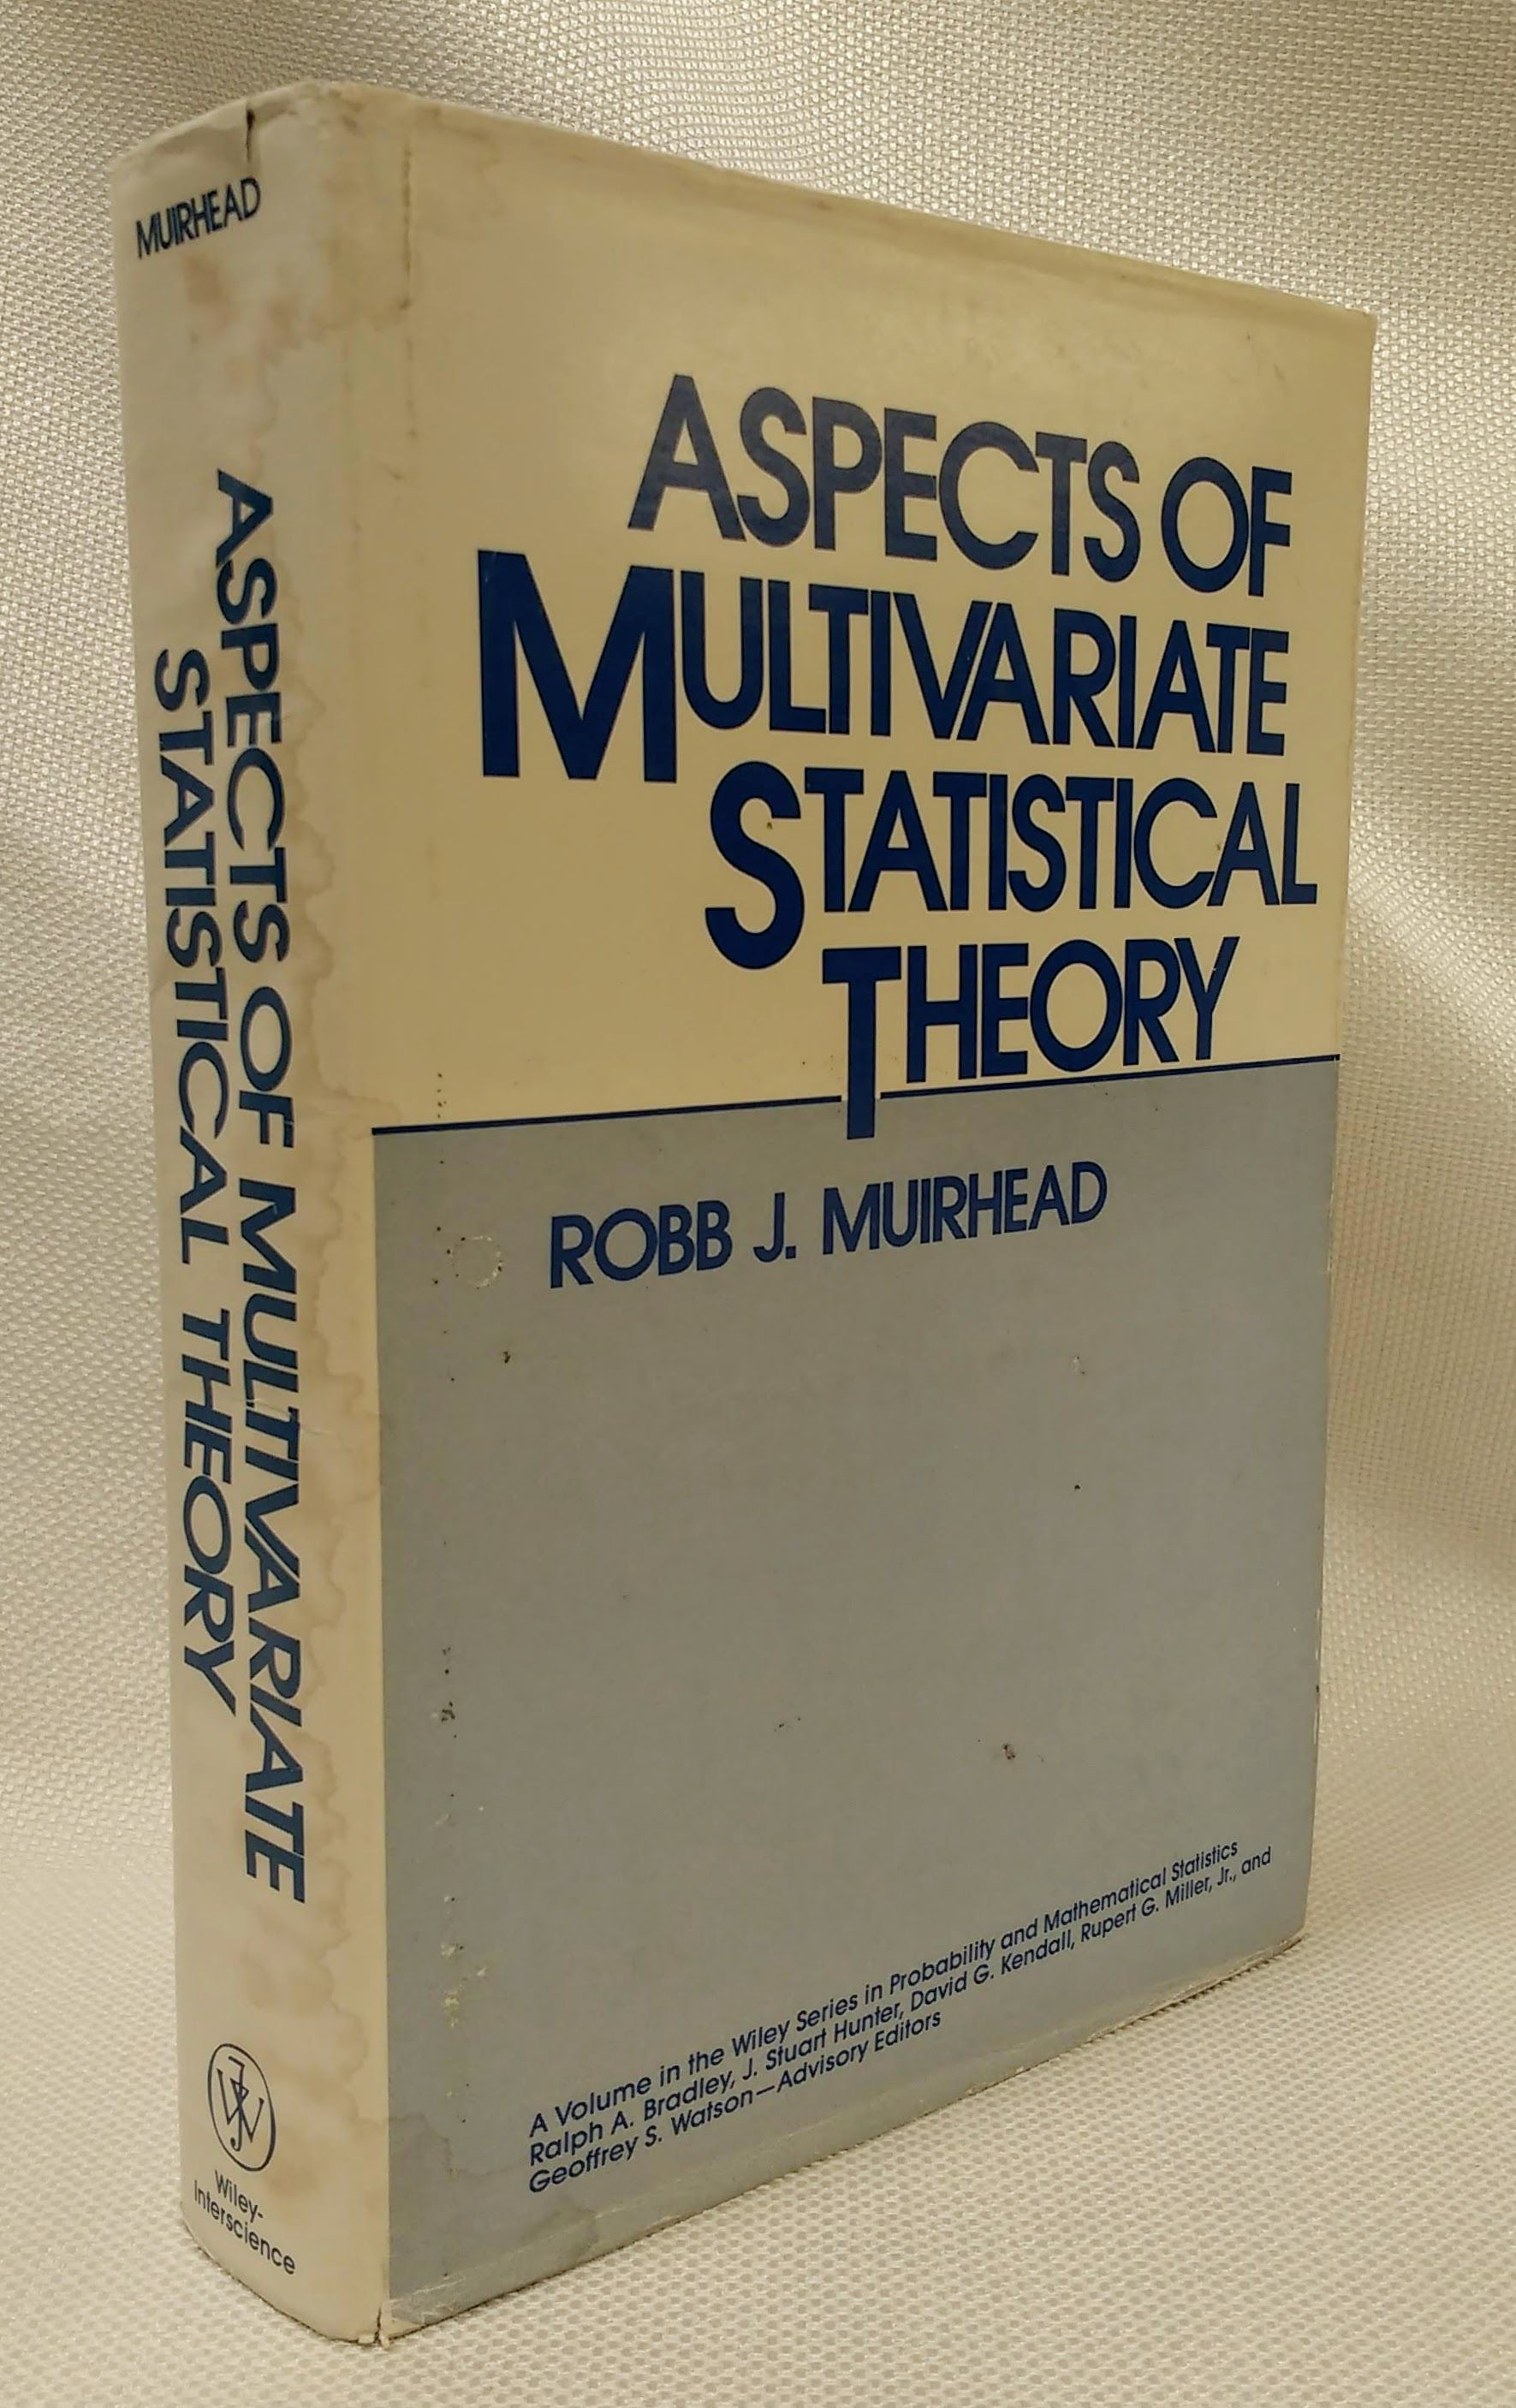 Aspects of Multivariate Statistical Theory (Wiley Series in Probability and Statistics), Muirhead, Robb J.